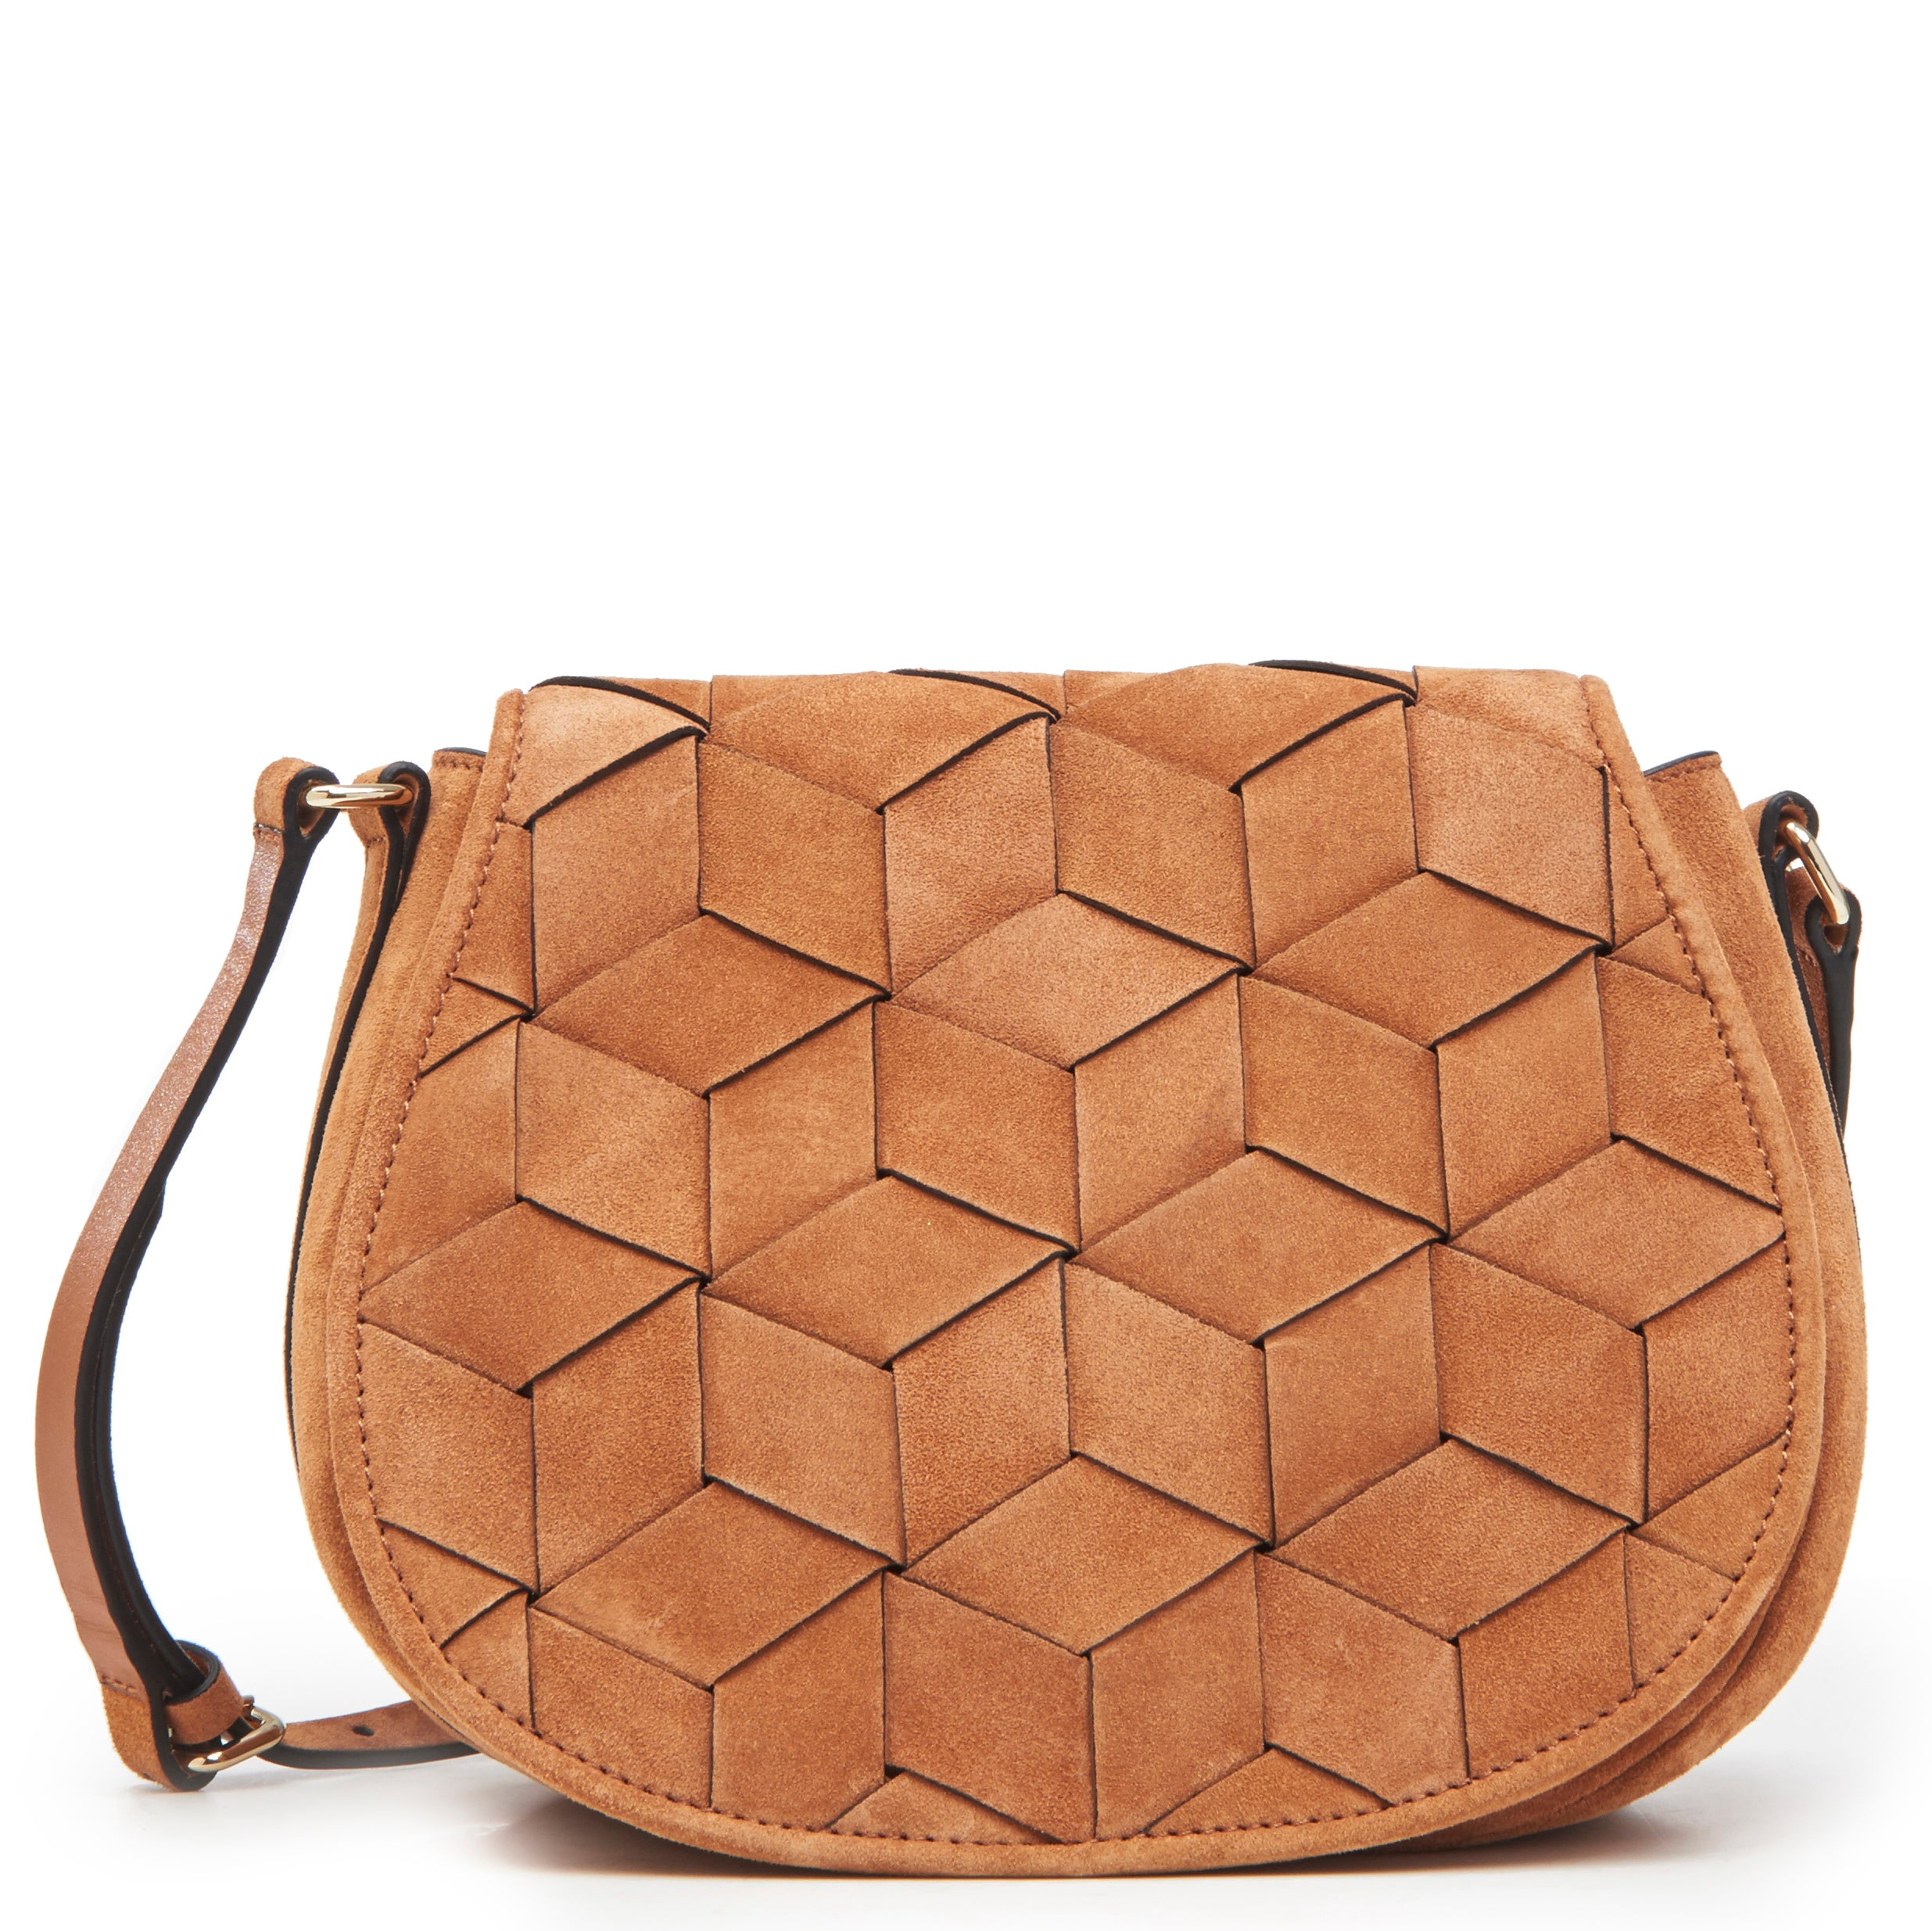 Escapade Saddle Bag - WELDEN